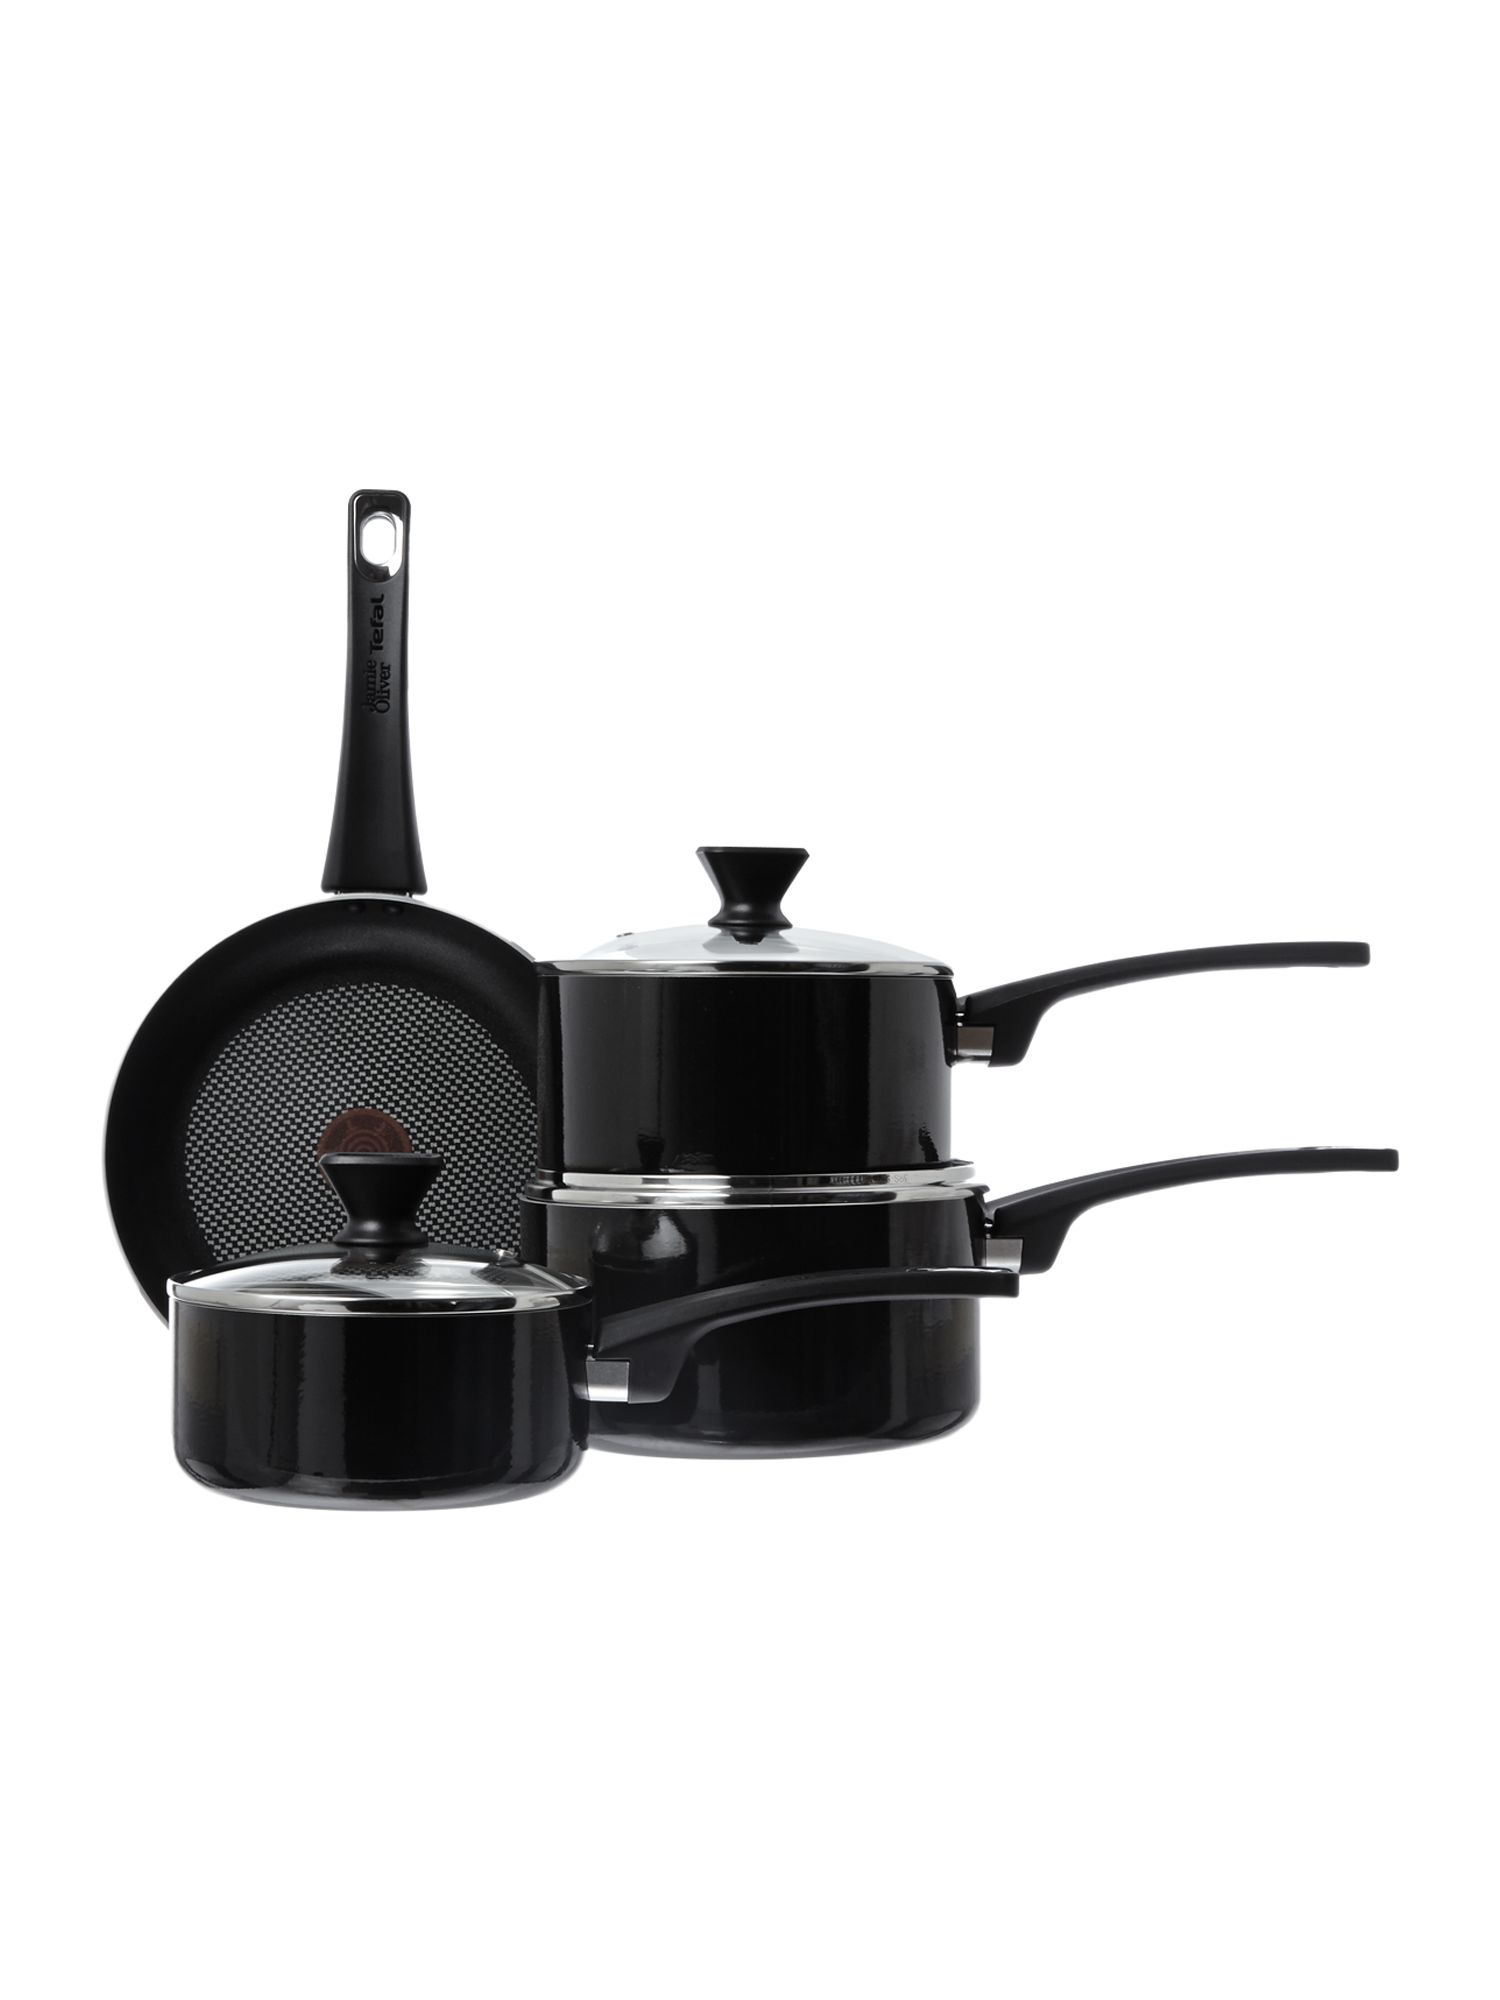 Jamie Oliver by Tefal Jamie Oliver by Tefal Essential Siers 4 piece set